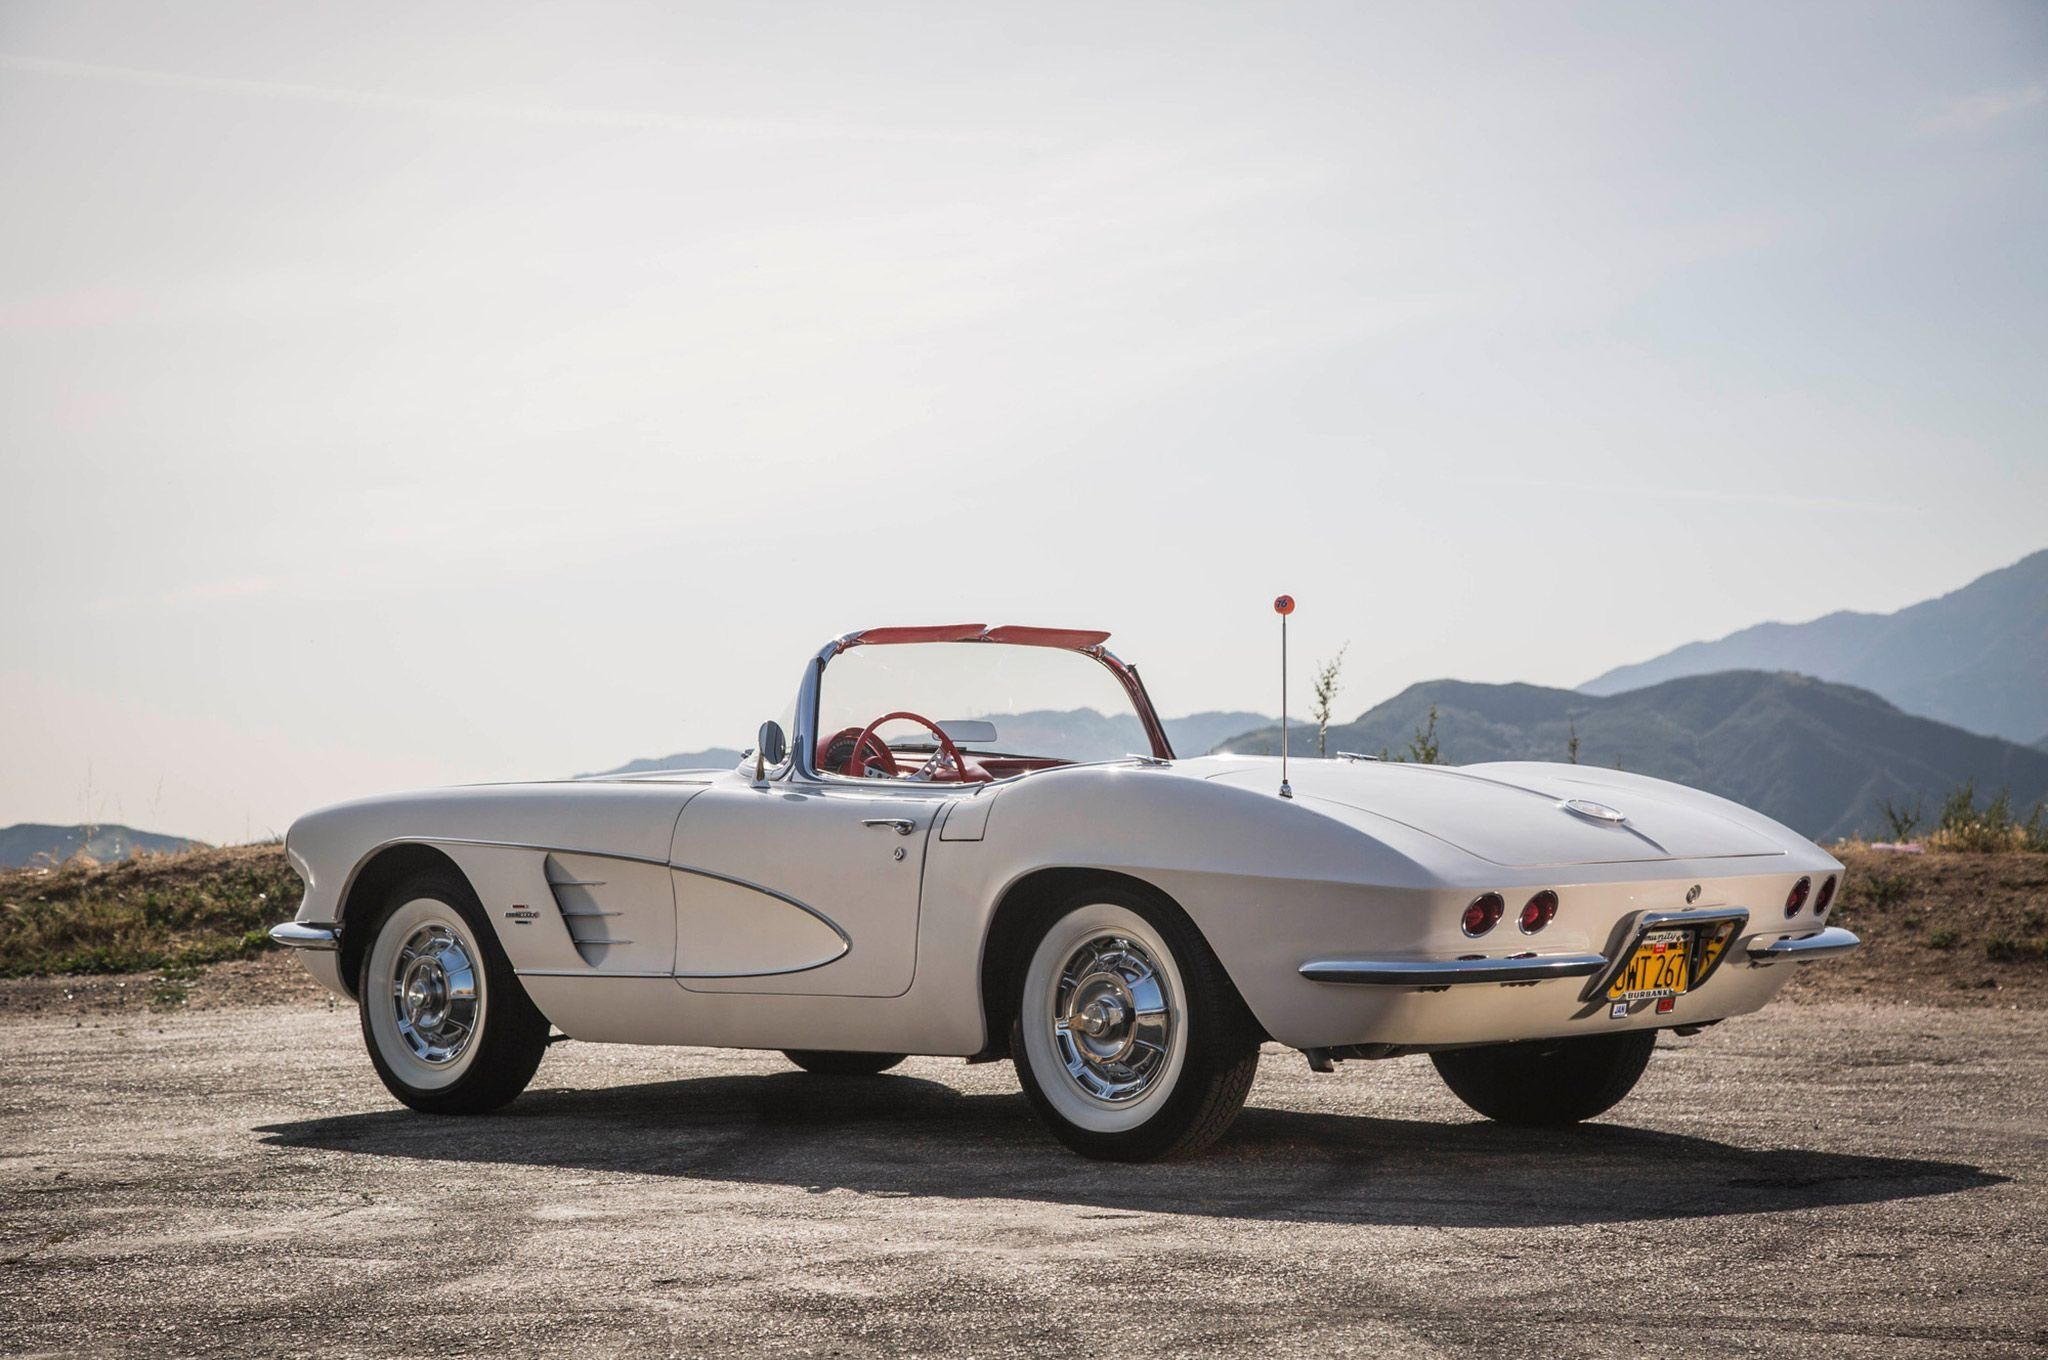 1961_Corvette_chevy_chevrolet_convertible_white__c1__cars_2048x1360.jpg